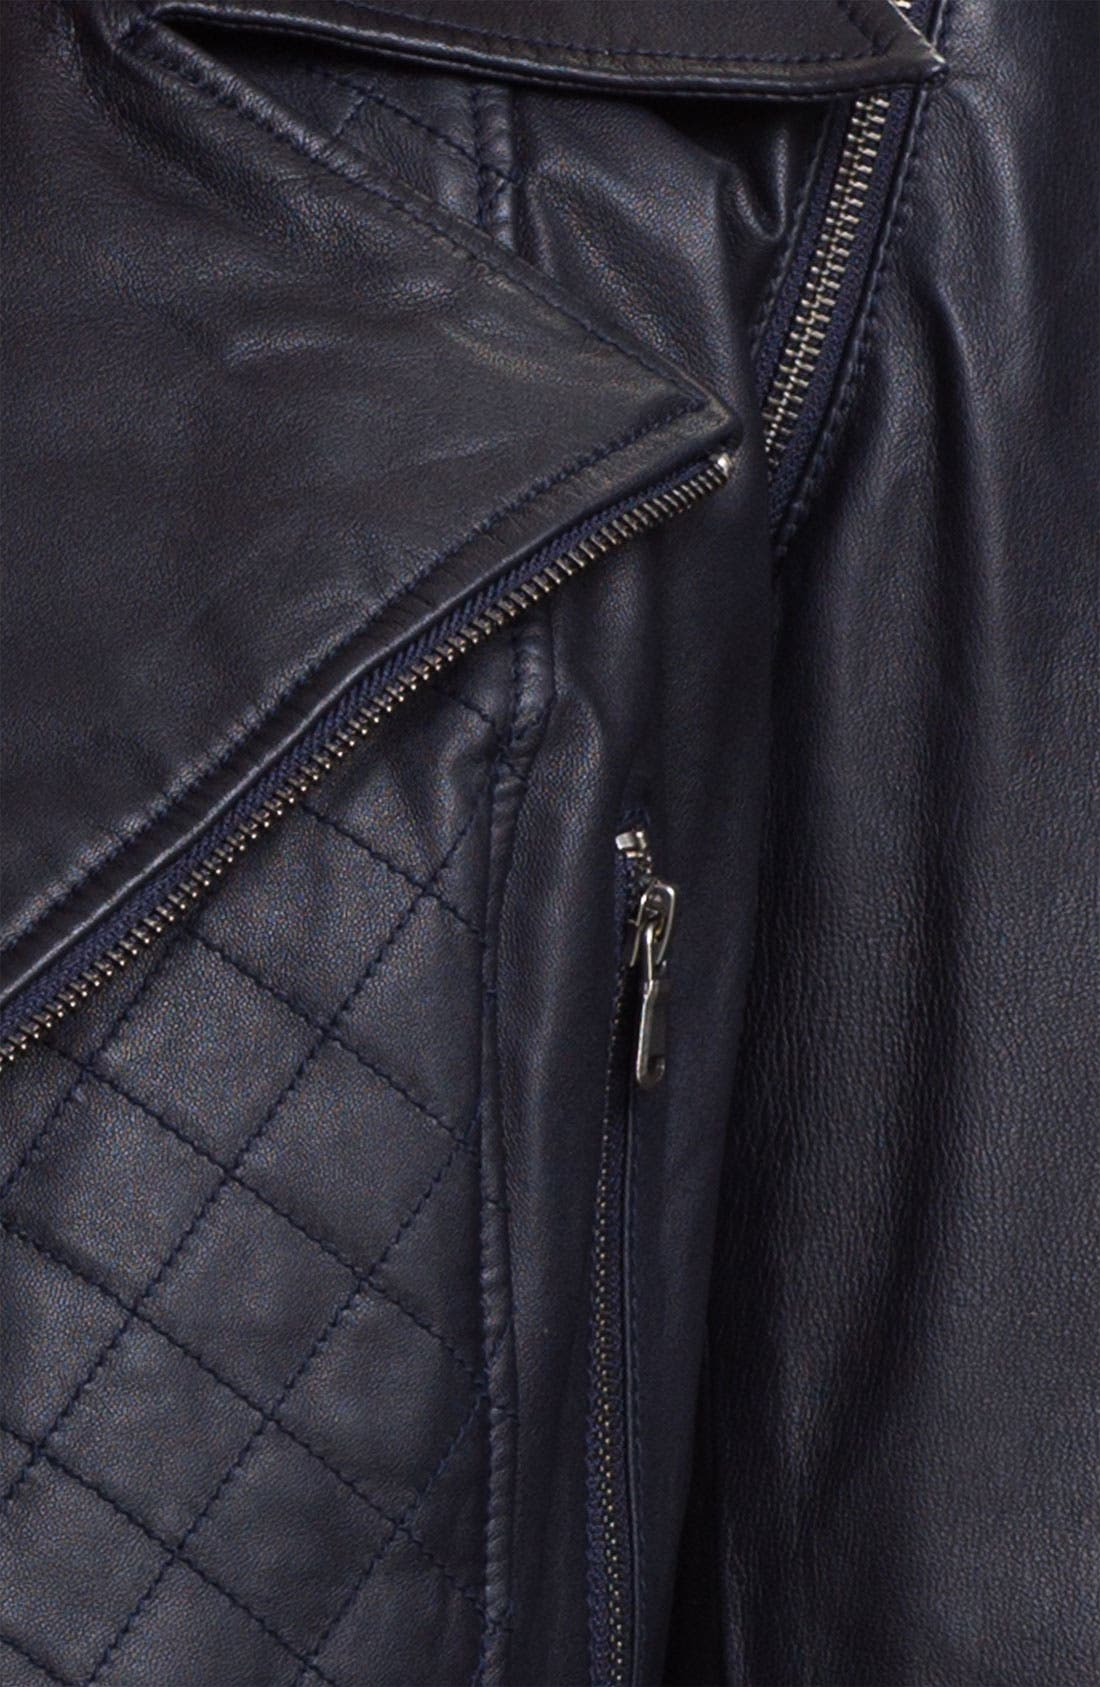 Kenna-T Convertible Quilted Leather Biker Jacket,                             Alternate thumbnail 3, color,                             410